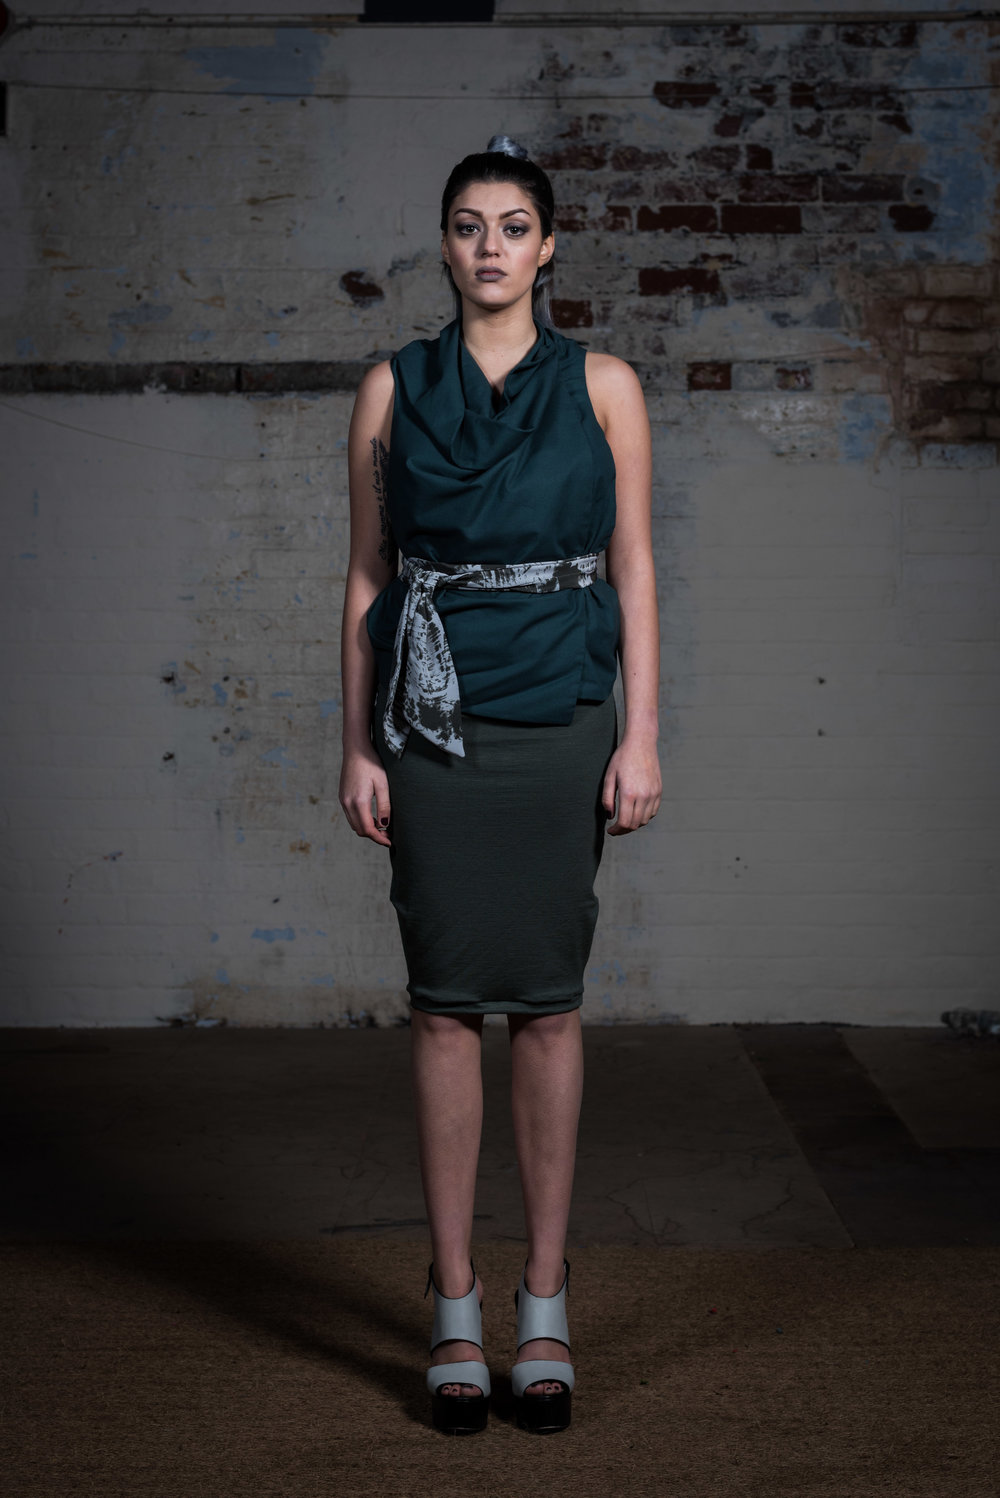 zaramia-ava-zaramiaava-leeds-fashion-designer-ethical-sustainable-teal-wrap-top-versatile-drape-skirt-grey-yuko-cowl-dress-styling-location-womenswear-models-photoshoot-1